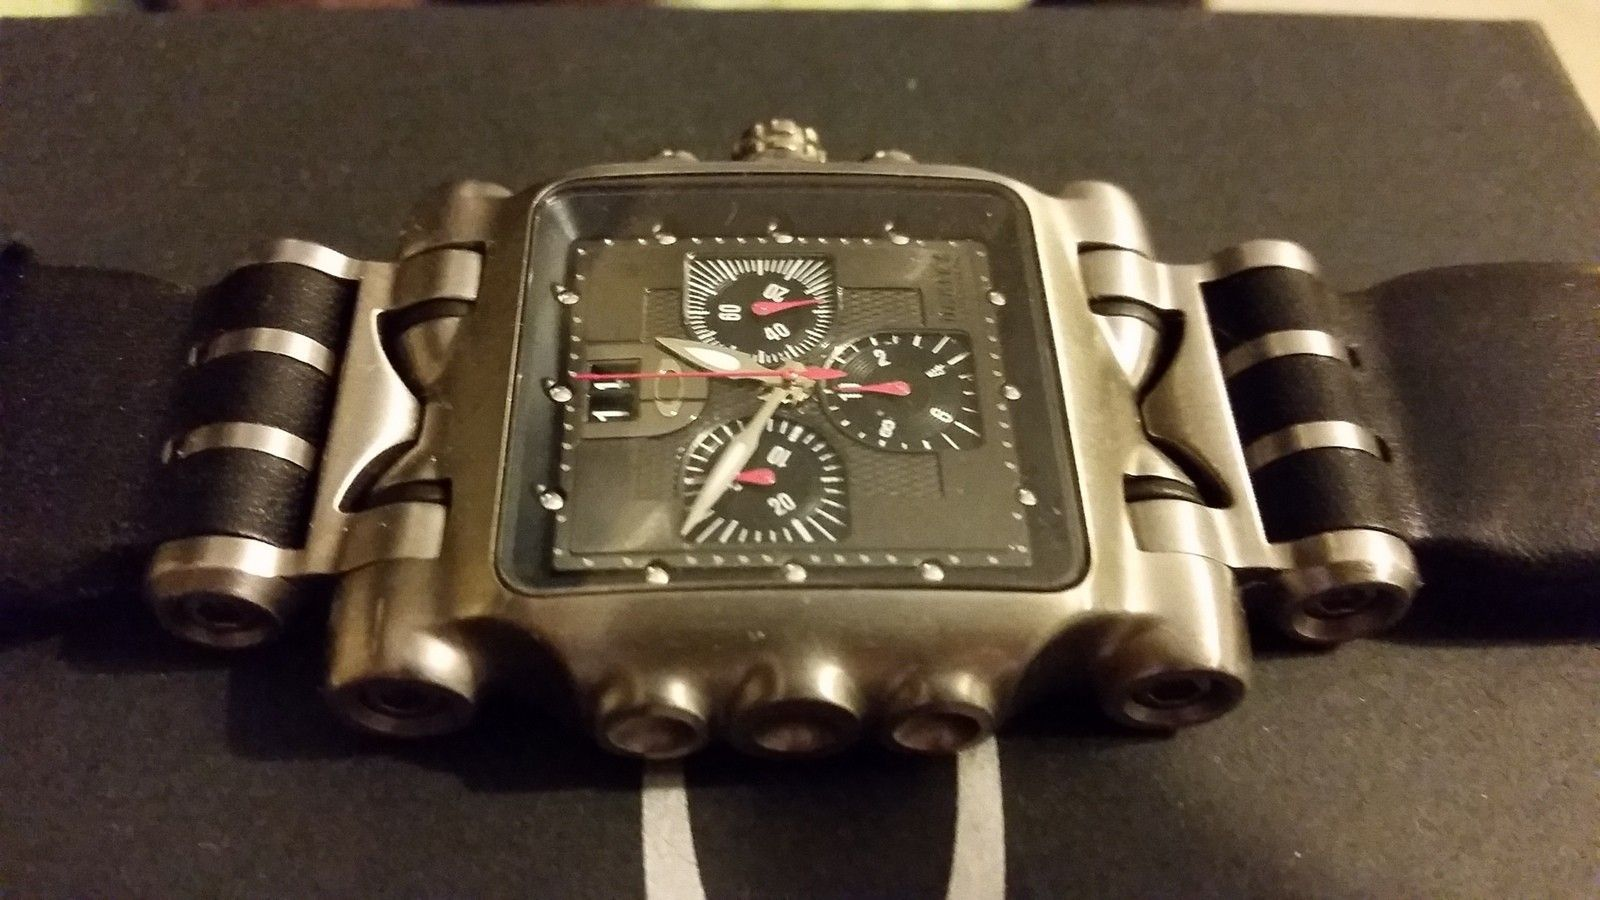 Fs Minute Machine Ti Face /w leather bands - uploadfromtaptalk1421262340876.jpg